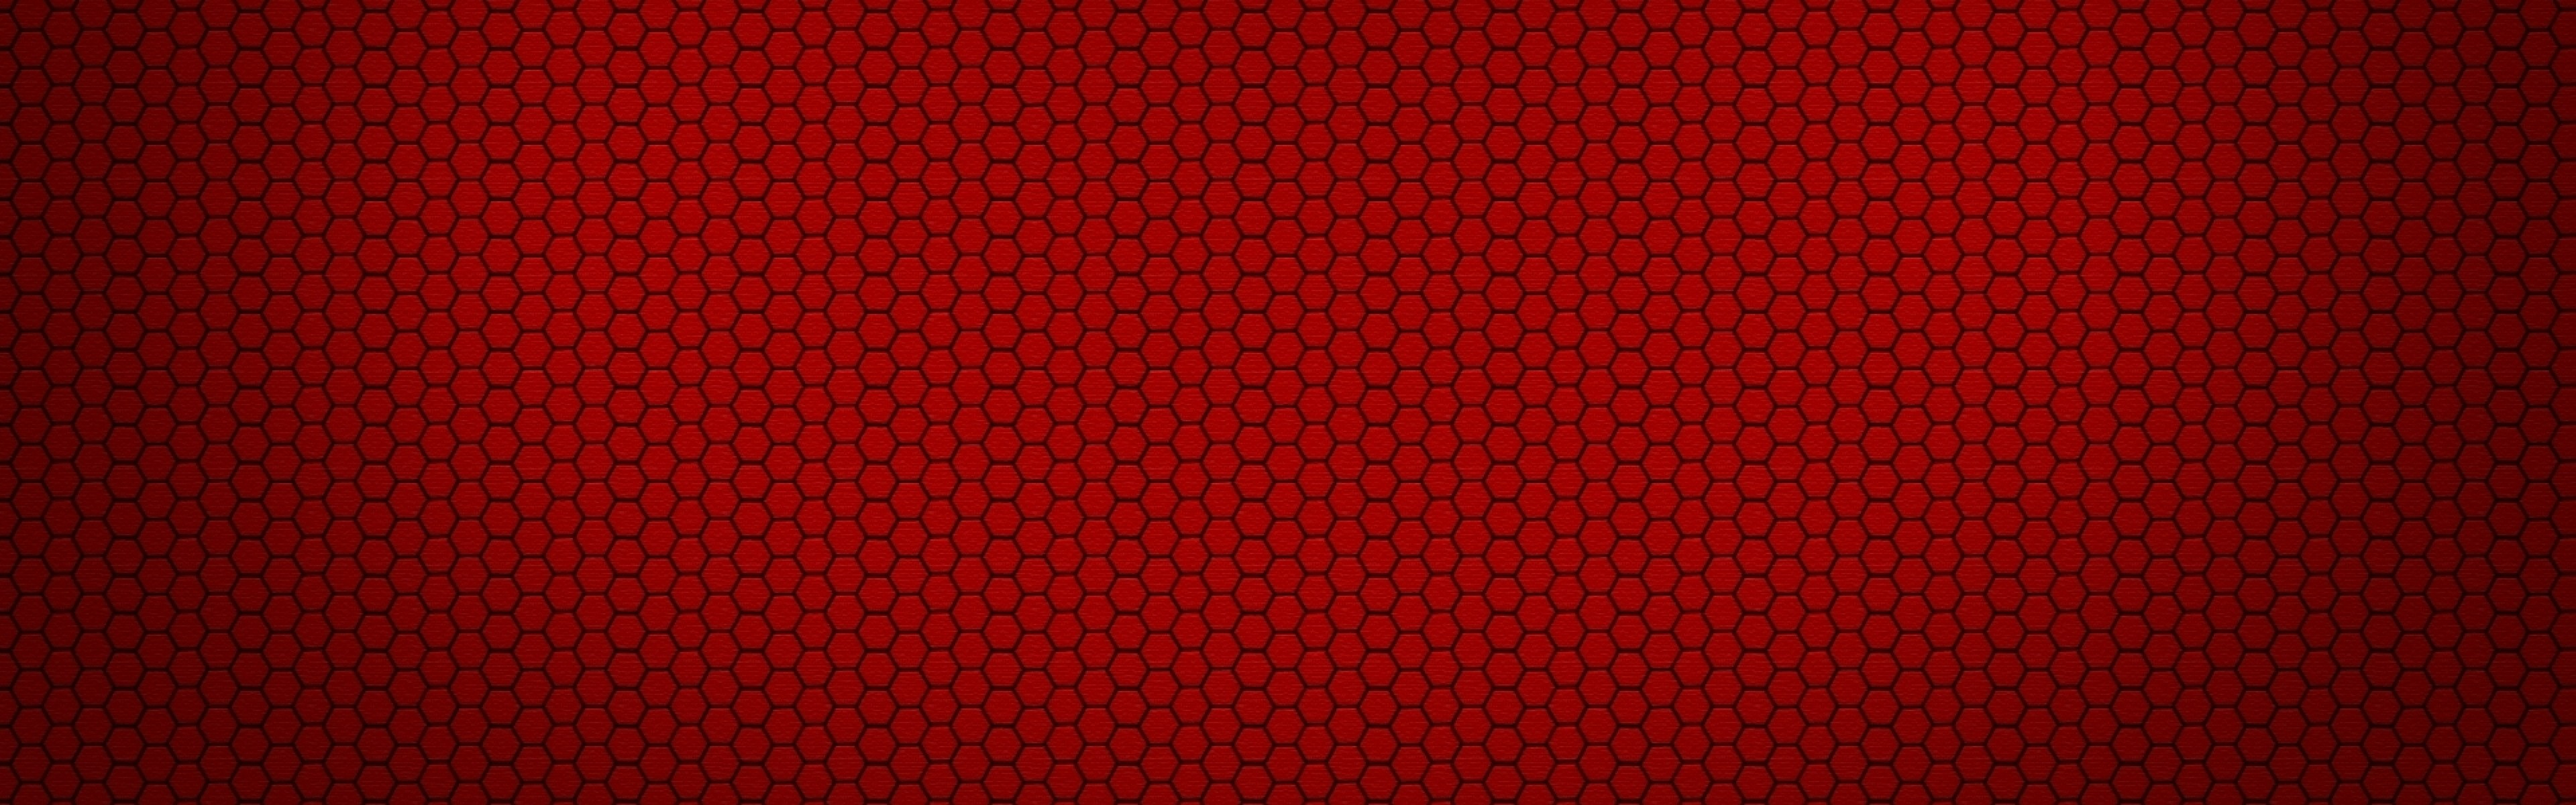 dotted texture wallpaper 1920x1080 - photo #44